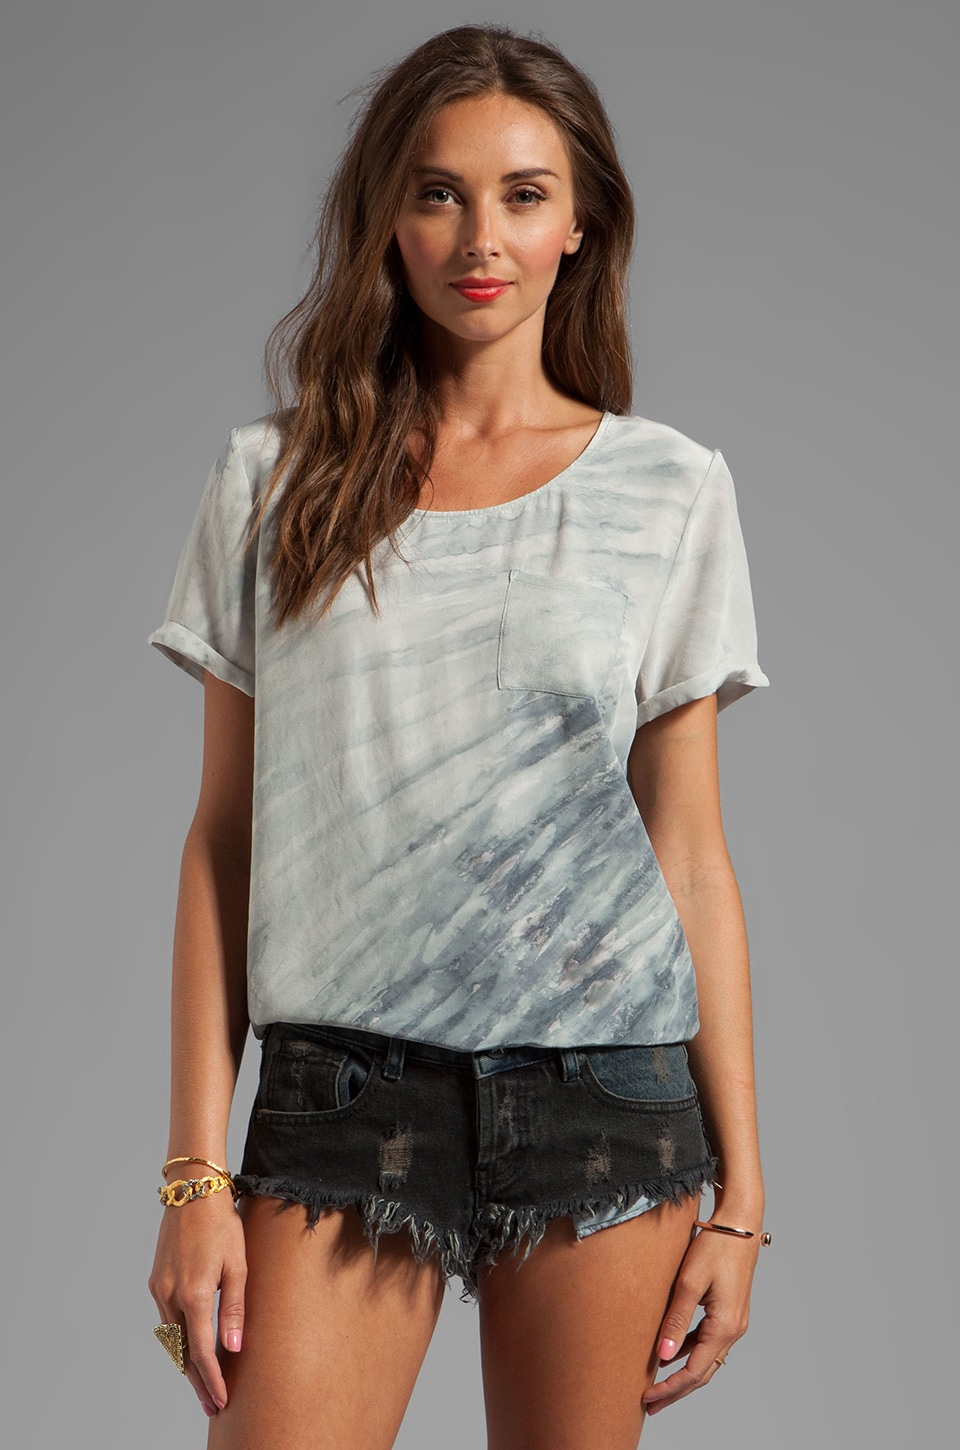 Gypsy 05 Calvi Mixed Silk Short Sleeve Top With Pocket in Malibu Dusk